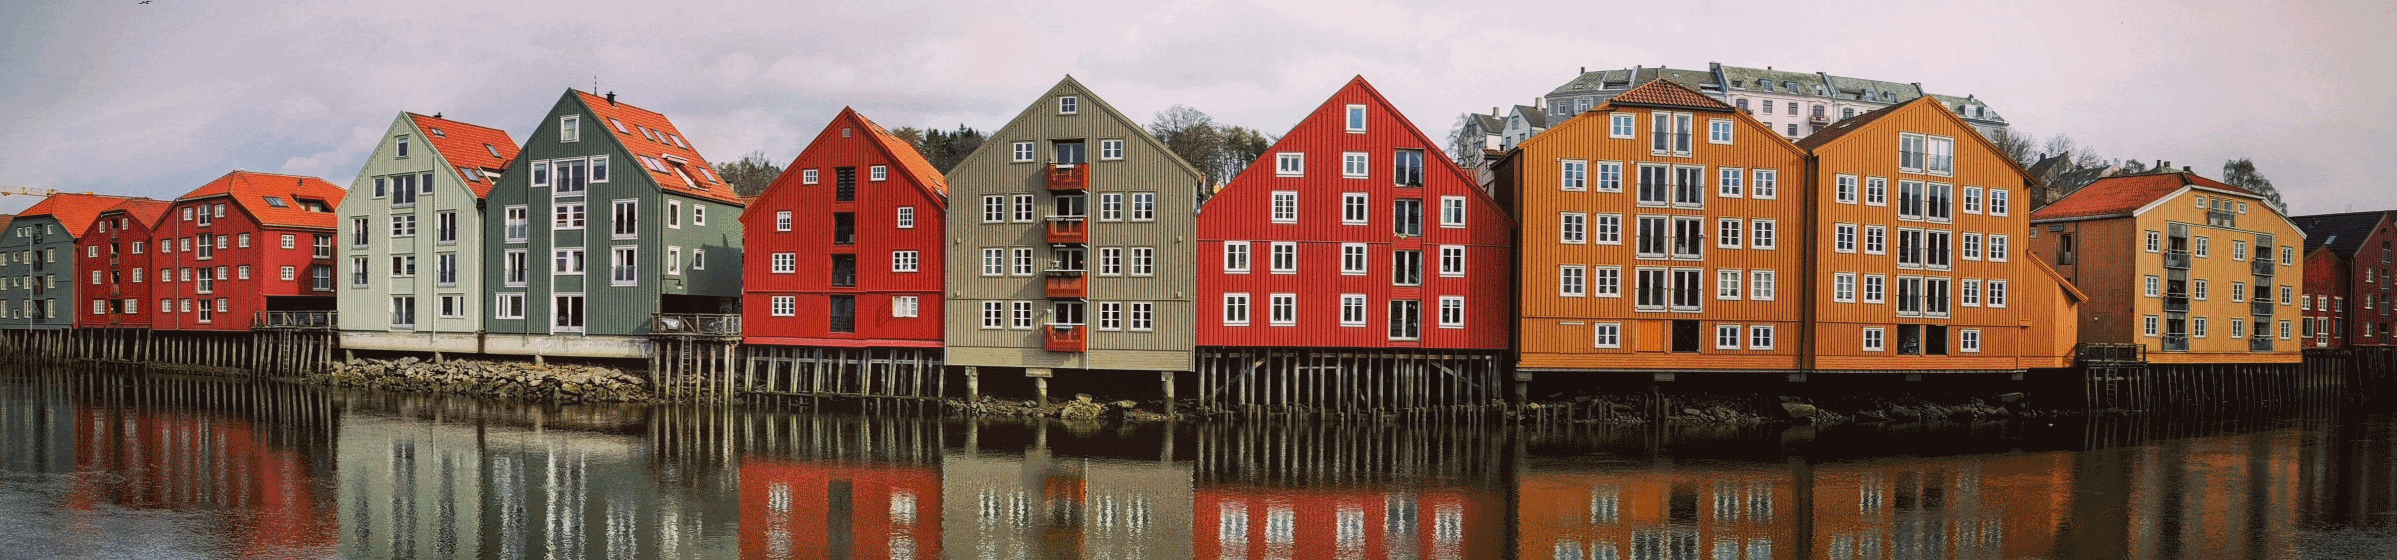 Coloured houses on river